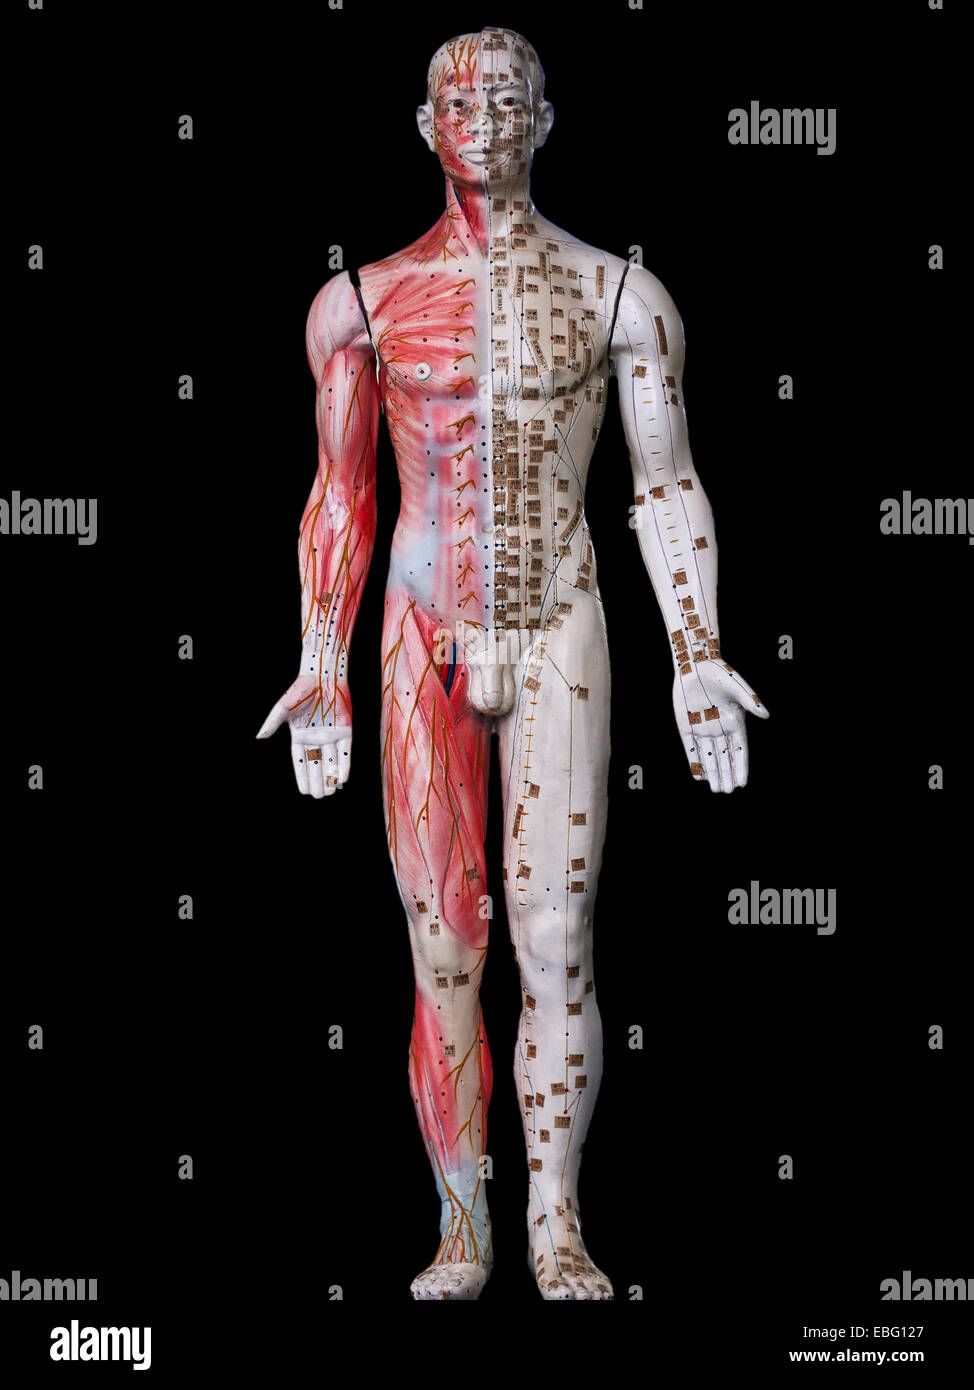 Anatomical Man And Skeletal Muscle Detail Stock Photo 75954767 Alamy